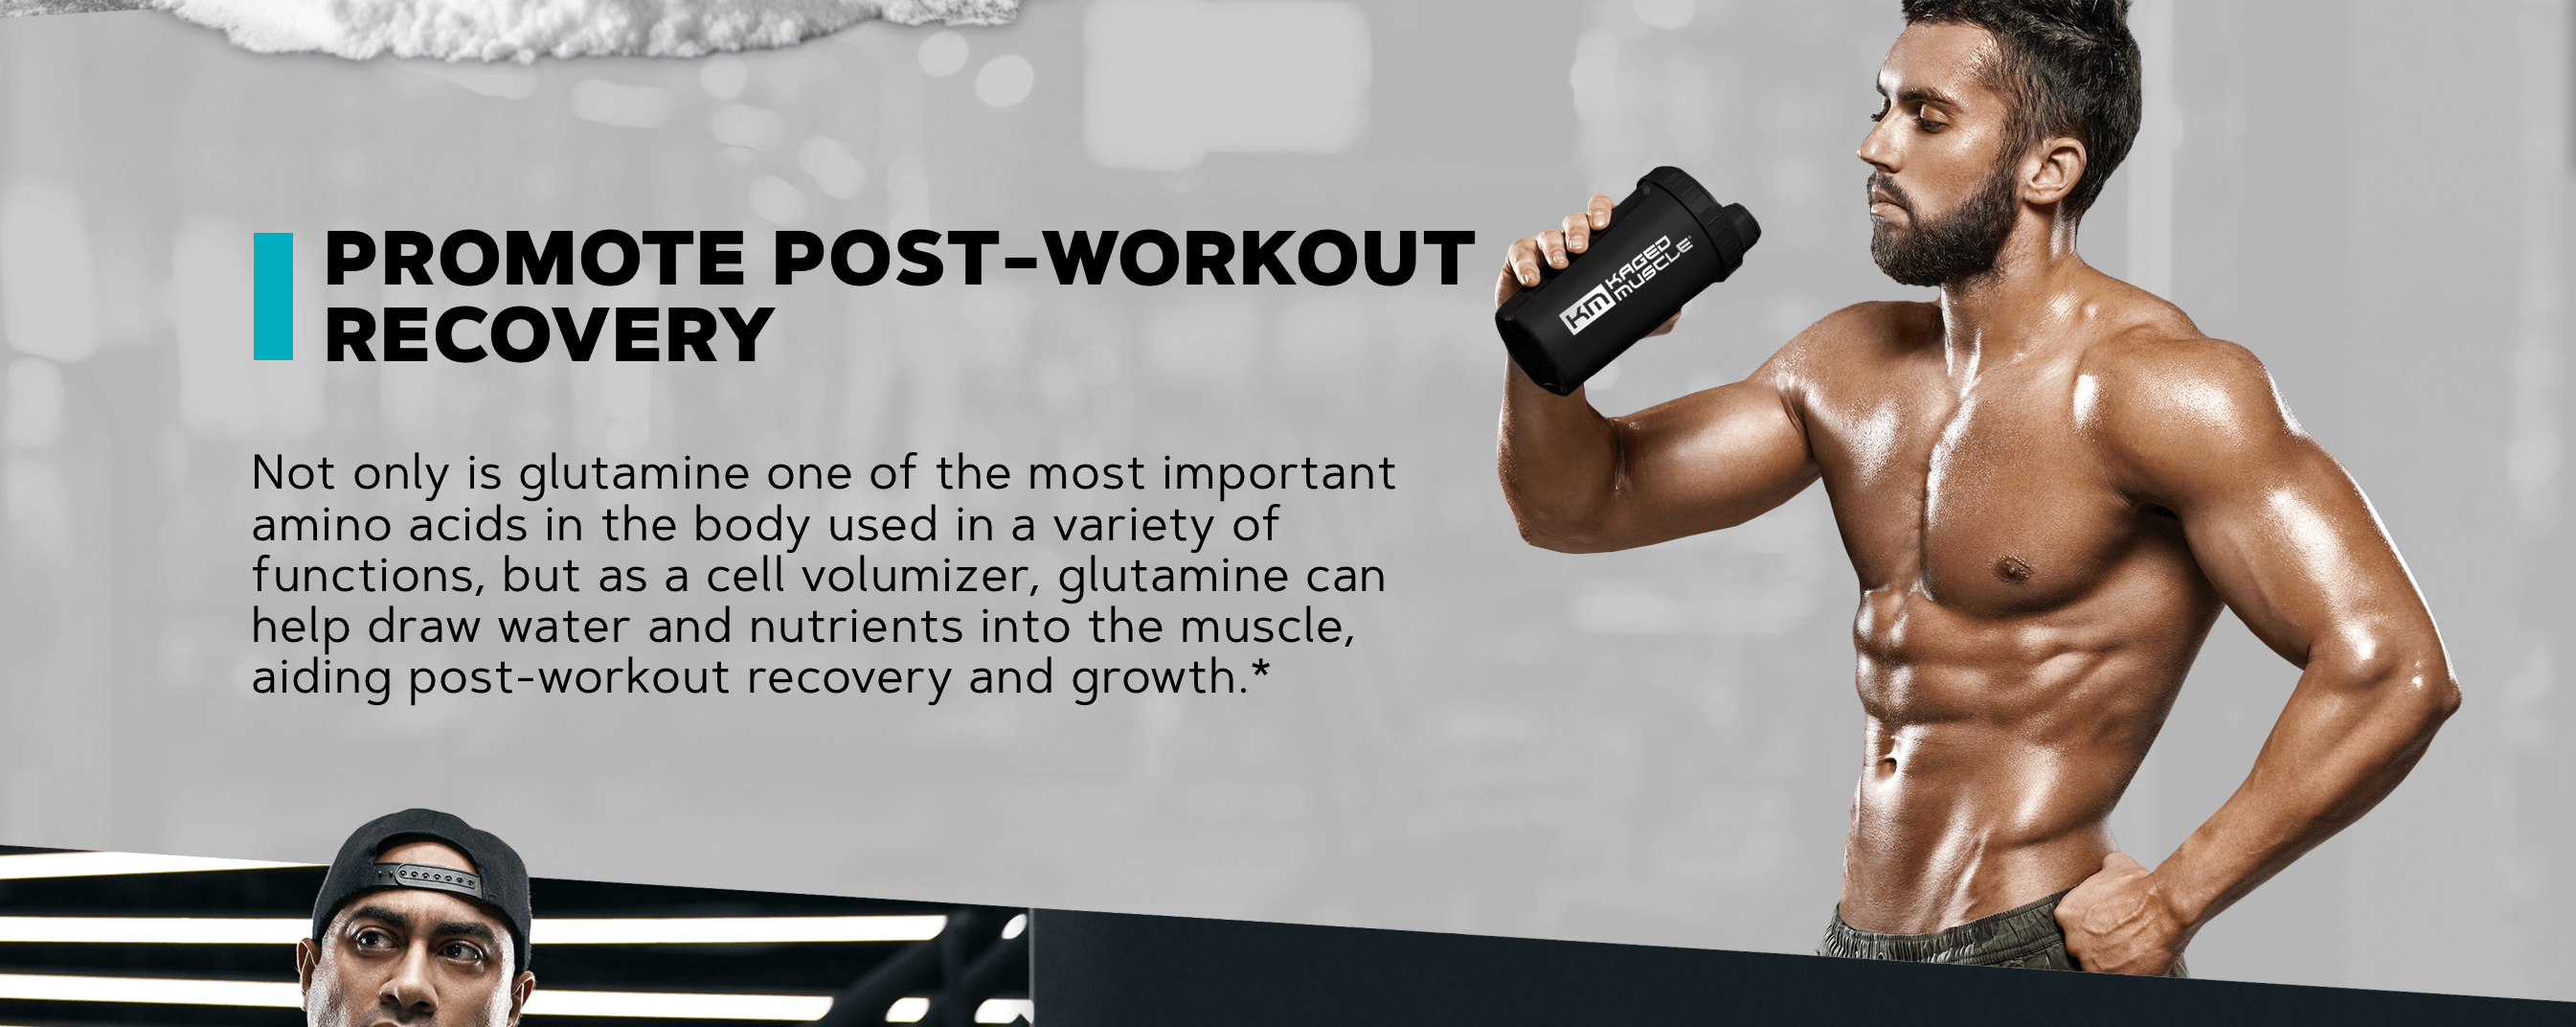 PROMOTE POST-WORKOUT RECOVERY  Not only is glutamine one of the most important amino acids in the body used in a variety of functions, but as a cell volumizer, glutamine can help draw water and nutrients into the muscle, aiding post-workout recovery and growth.*